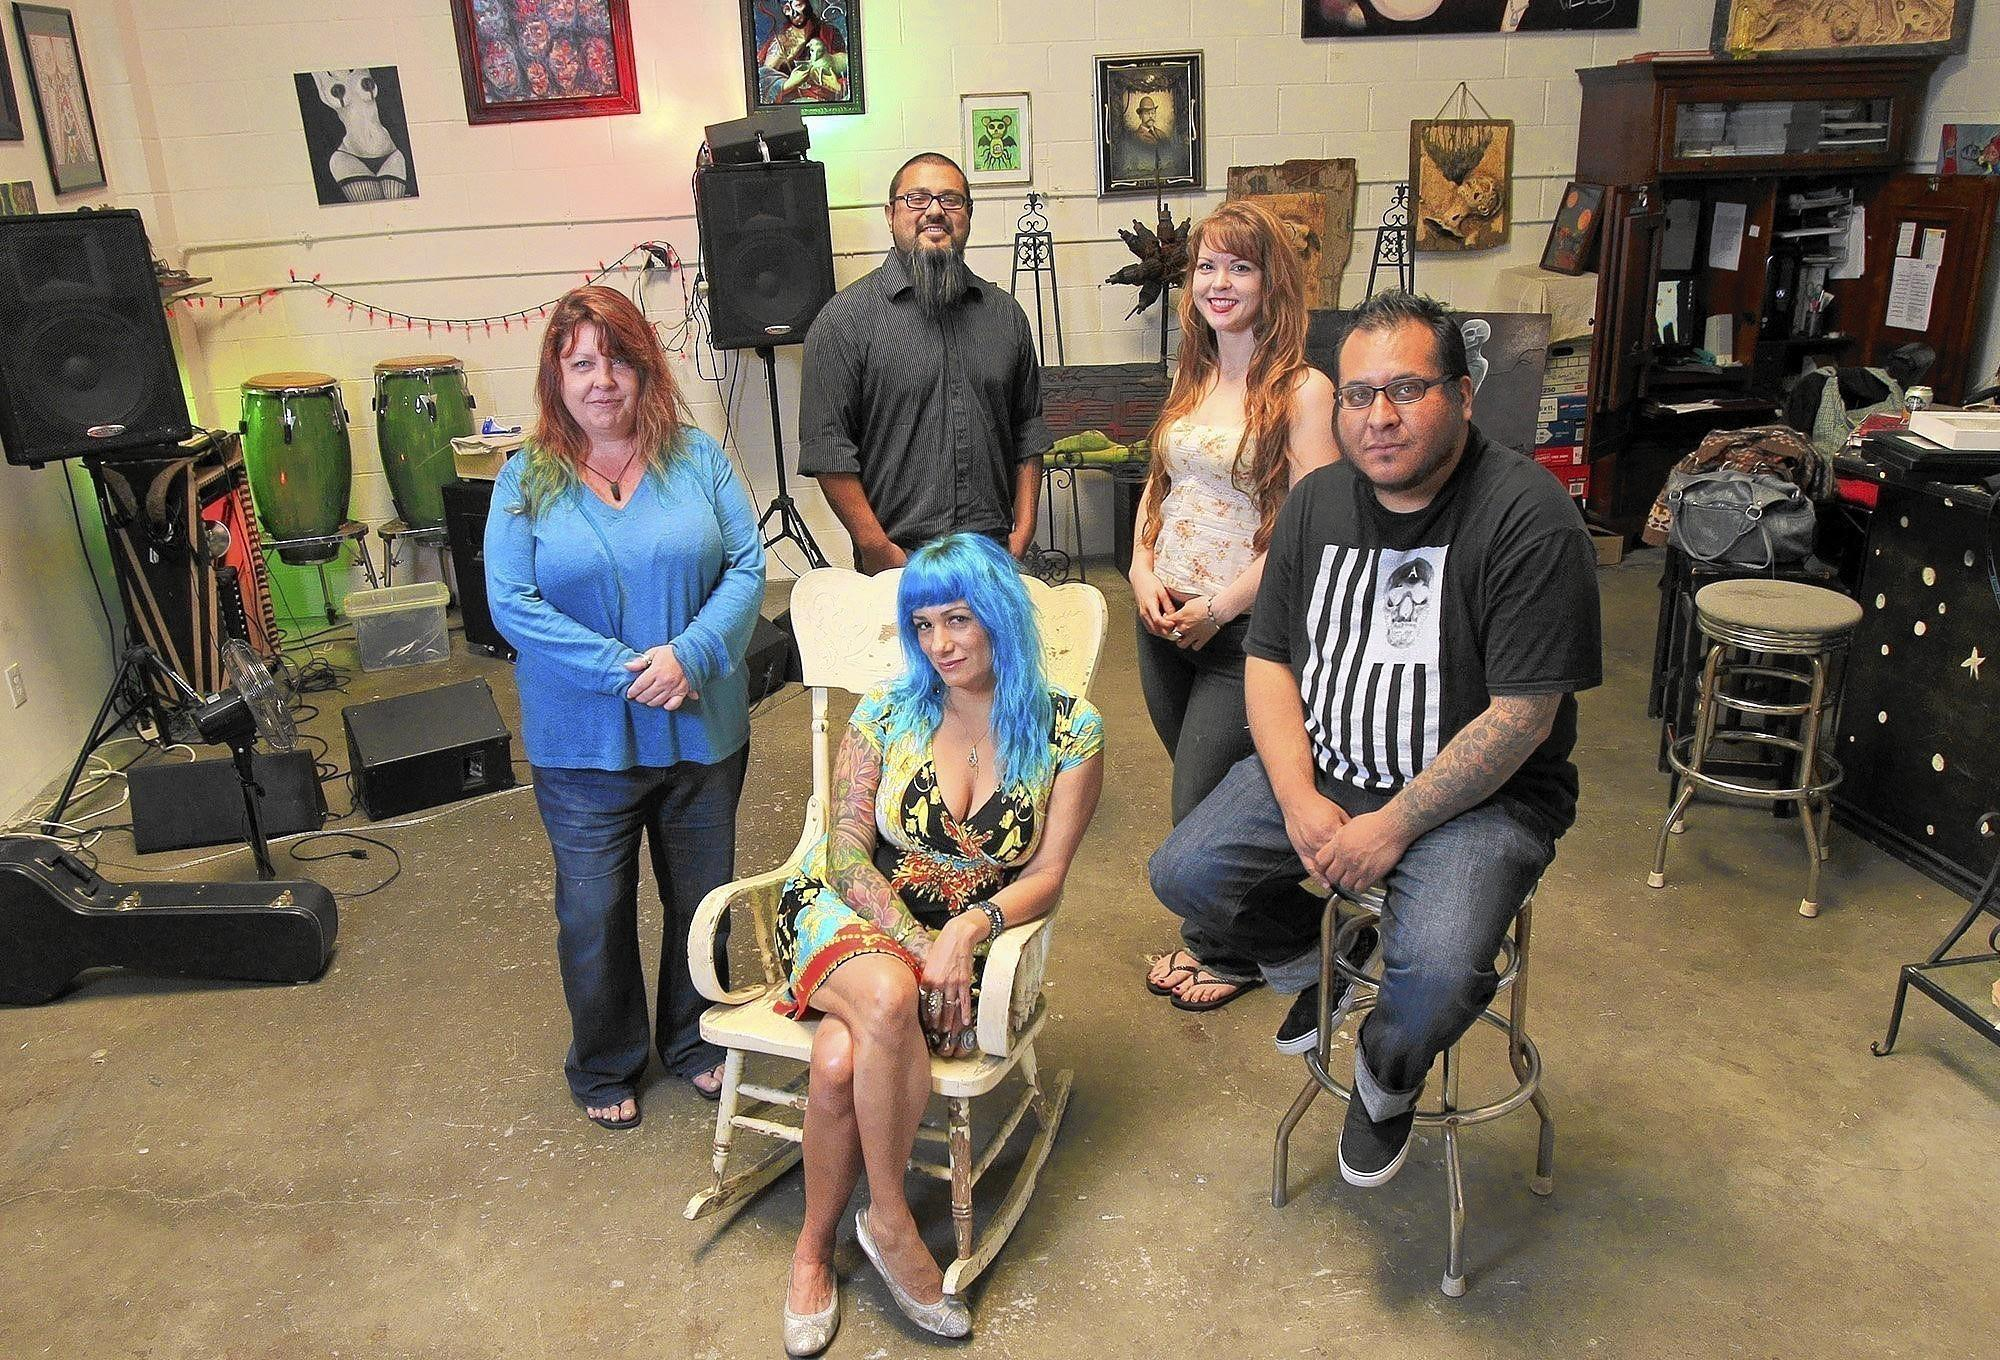 Owner Kat Monroe, center, poses for a photo with artists, counterclockwise from right, Vincent Gabriel, Carissa Martin, Michael Bermudez and Danaan McGregor at Sev Ven Gallery in Huntington Beach.